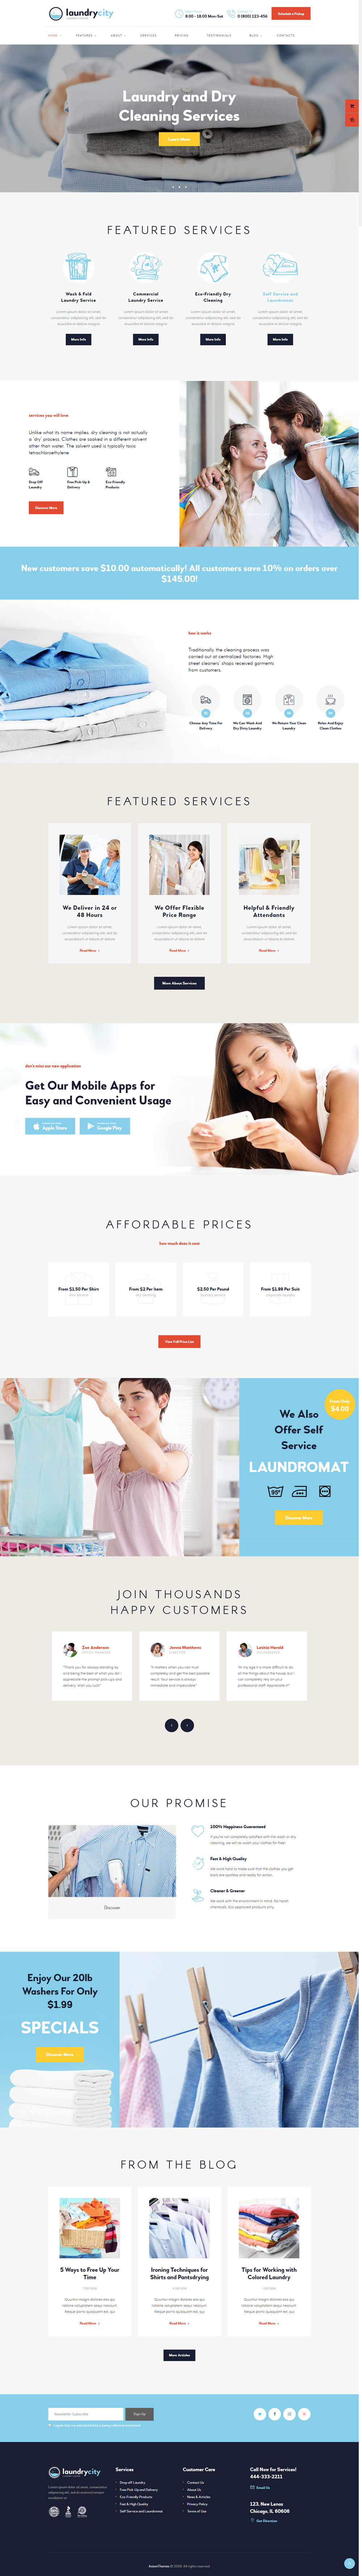 Laundry City - Dry Cleaning & Washing Services WordPress Theme